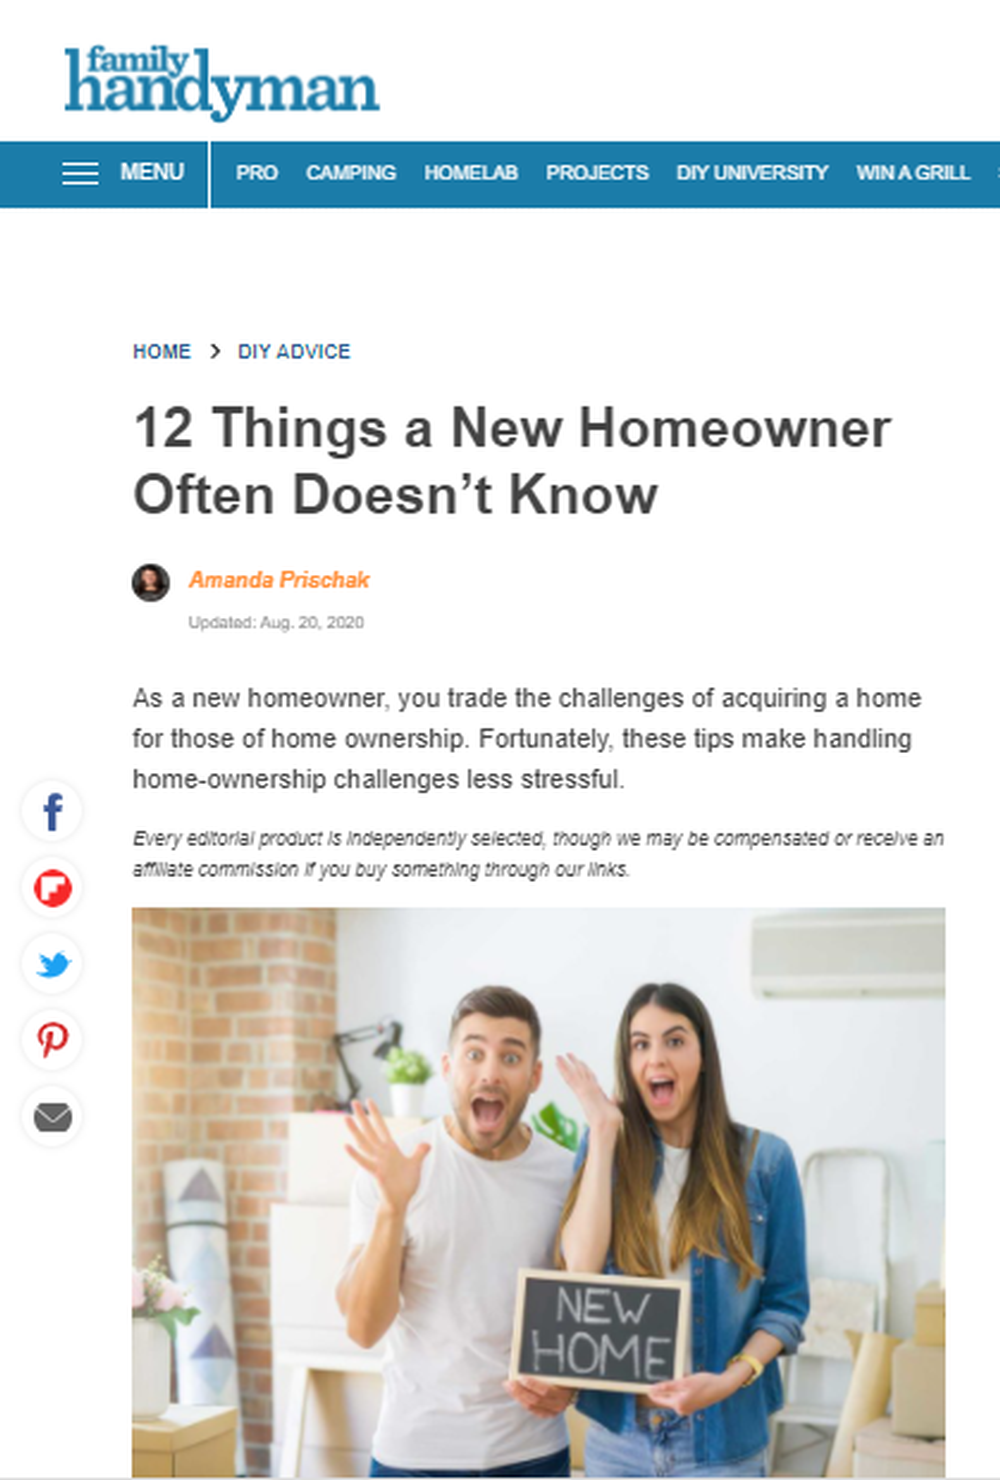 12-Things-a-New-Homeowner-Often-Doesn-t-Know.png